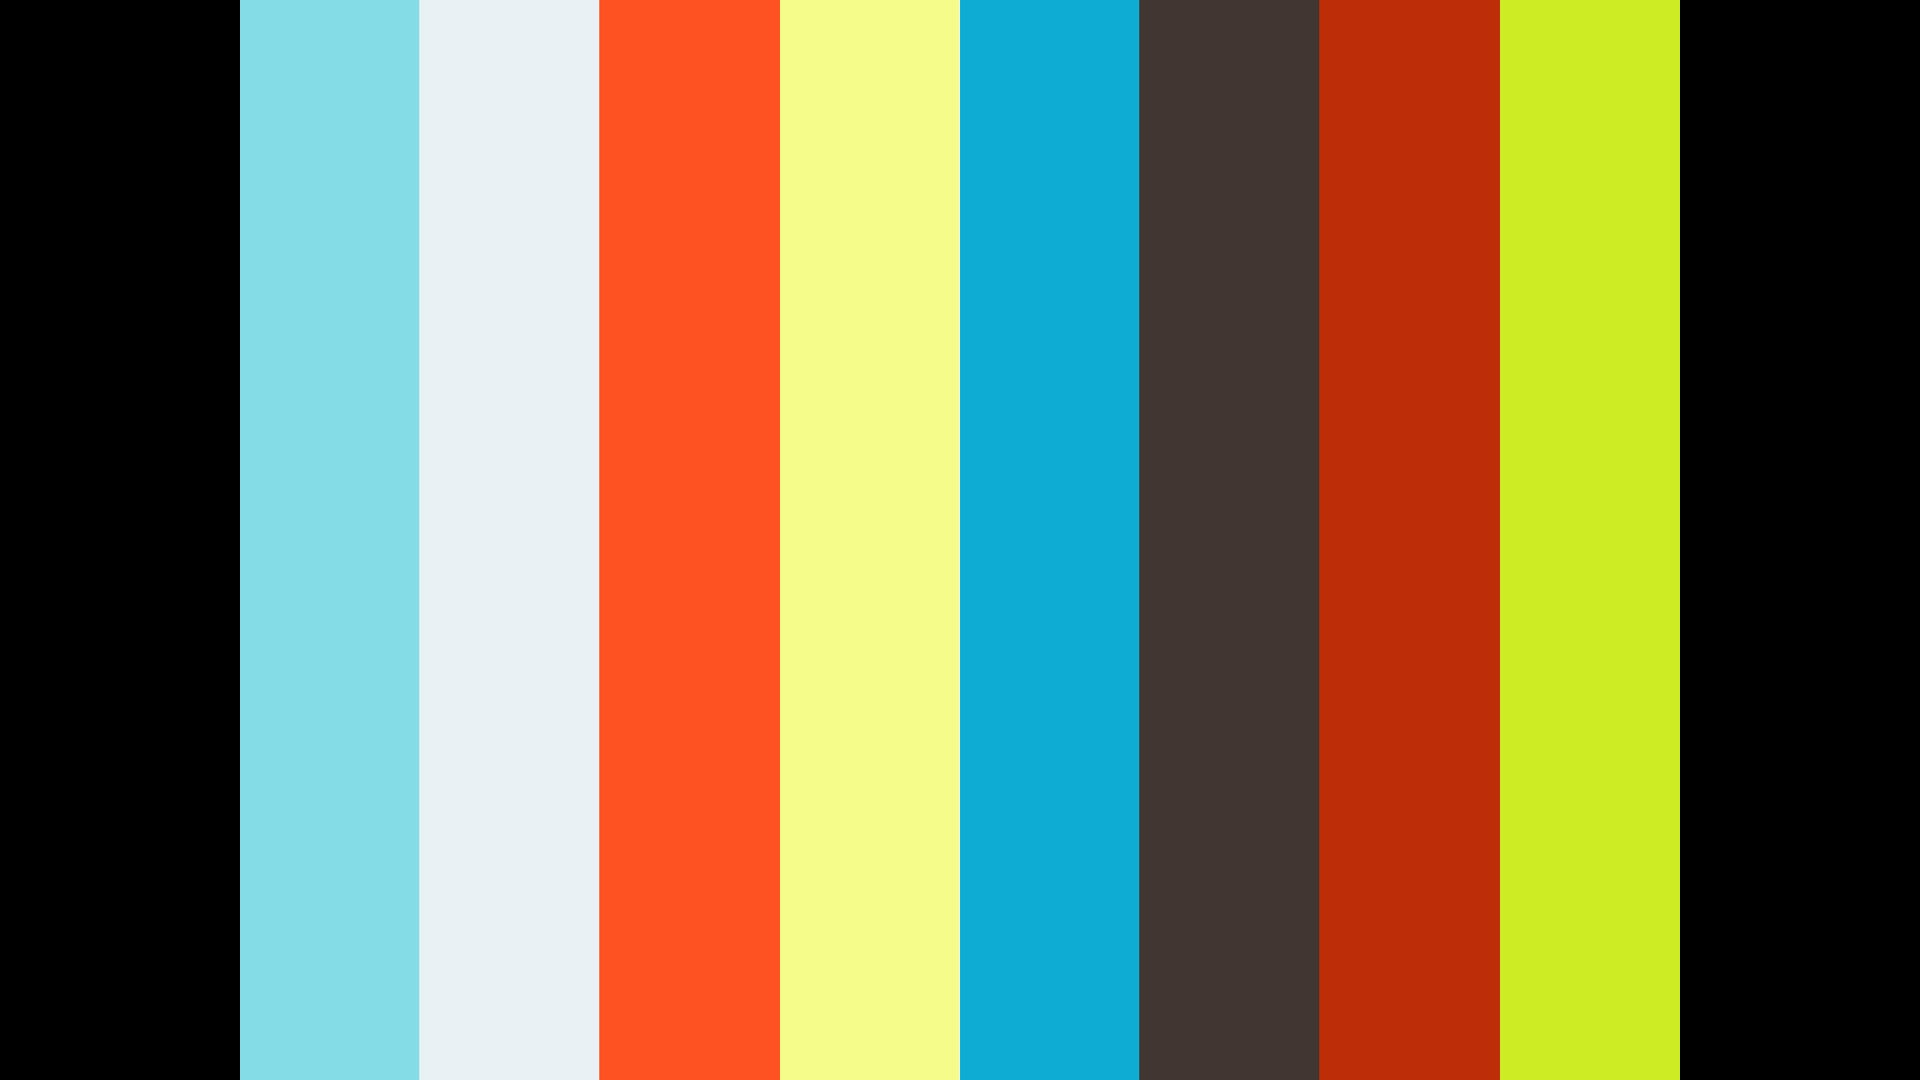 Vídeos Scribe / Whiteboard: sus cinco principales ventajas | Videocontent Tu vídeo desde 350€ | 1068219420 1920x1080 | videos-explicativos, videos-de-producto, videos-de-empresas, videos-corporativos-videos, video, video-promocional, video-institucional, video-didactico, video-animacion, edicion-de-videos